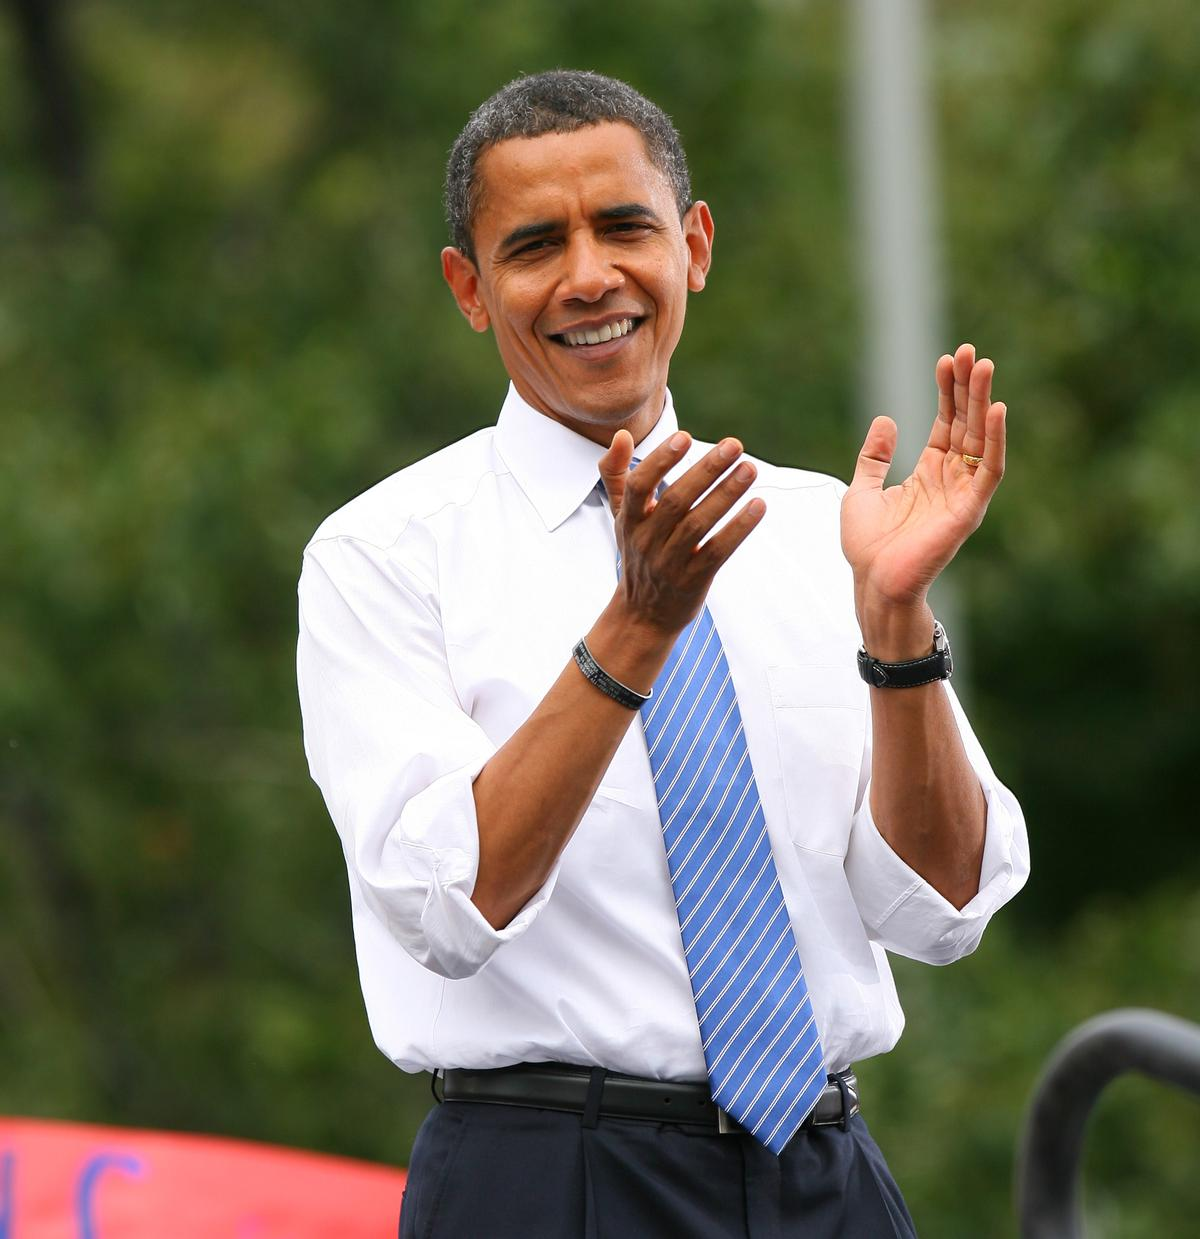 Former U.S. President Barack Obama is expected to have an operational role in the league